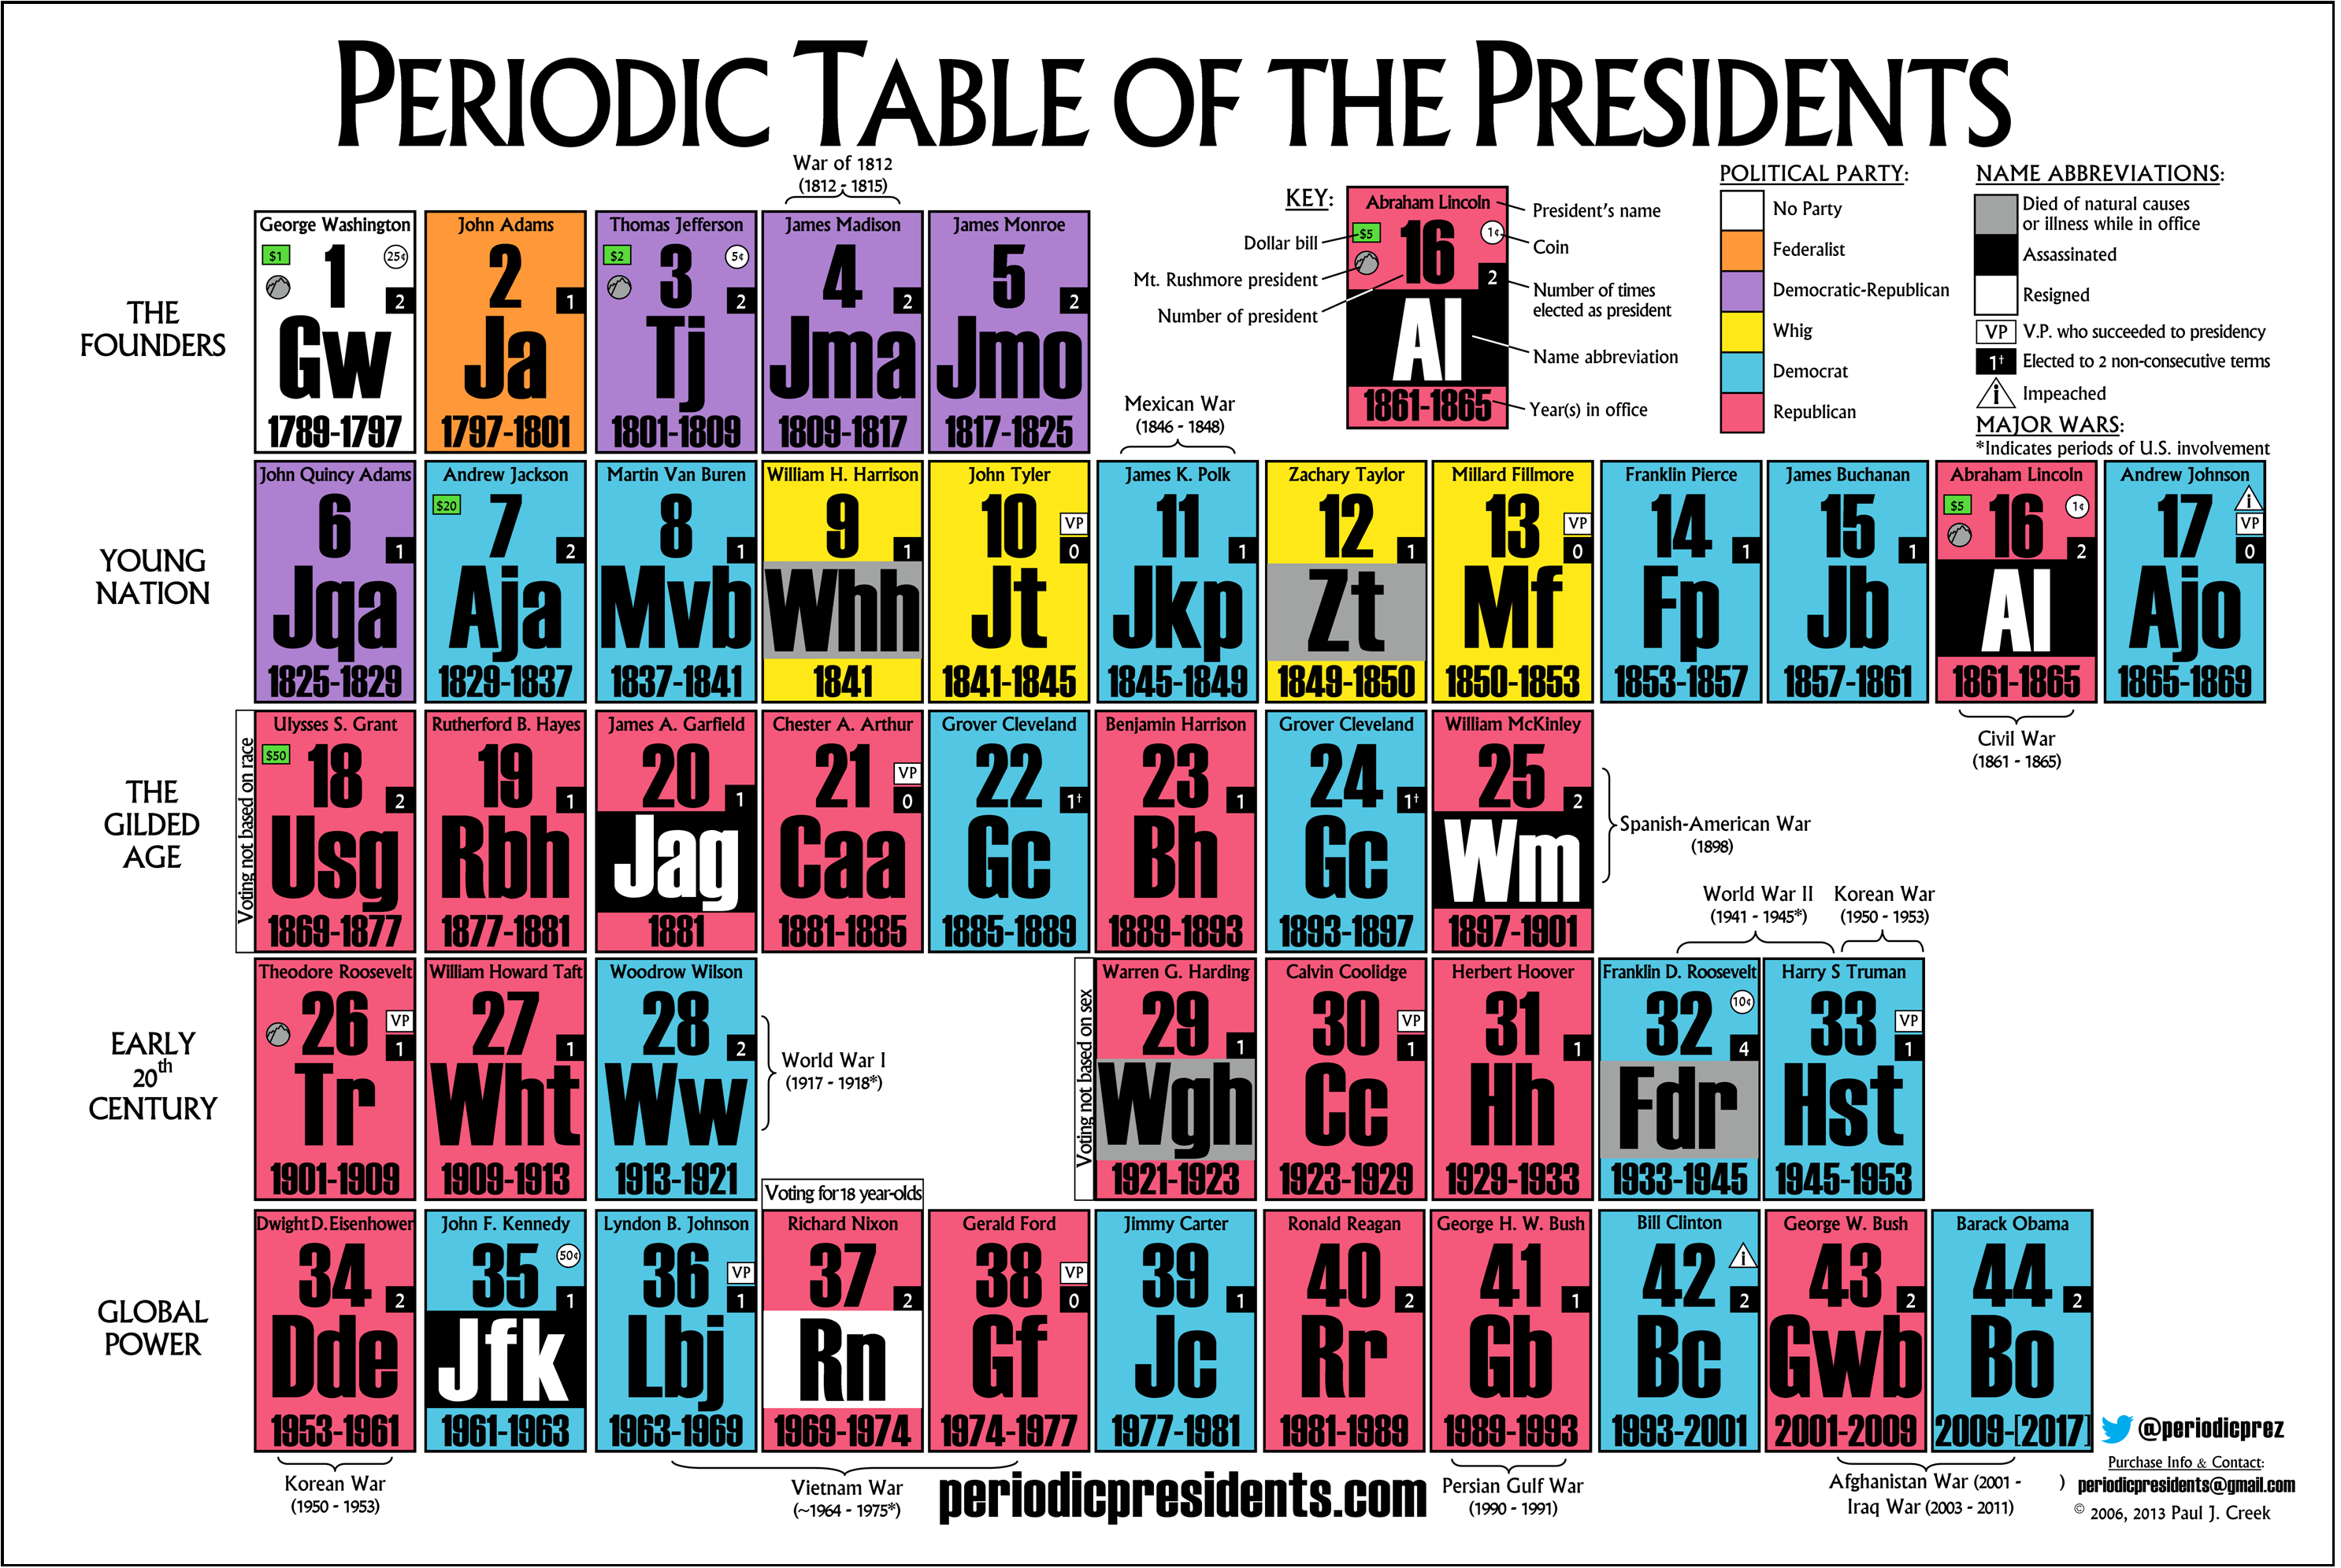 Cool link for the classroom the periodic table of the presidents periodic table of the presidents courtesy of periodicpresidents gamestrikefo Images